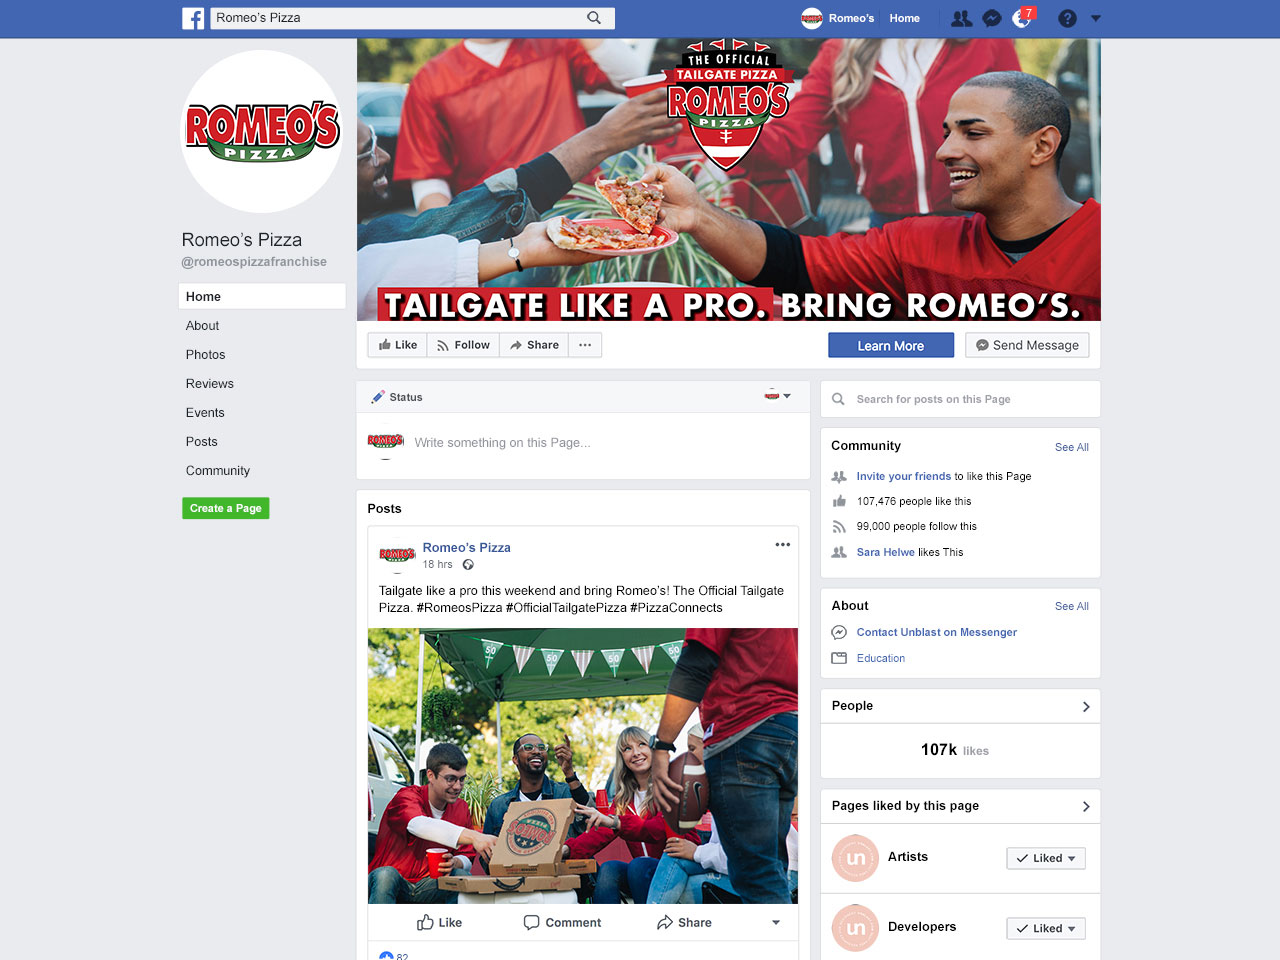 Romeo's Pizza Facebook page layout